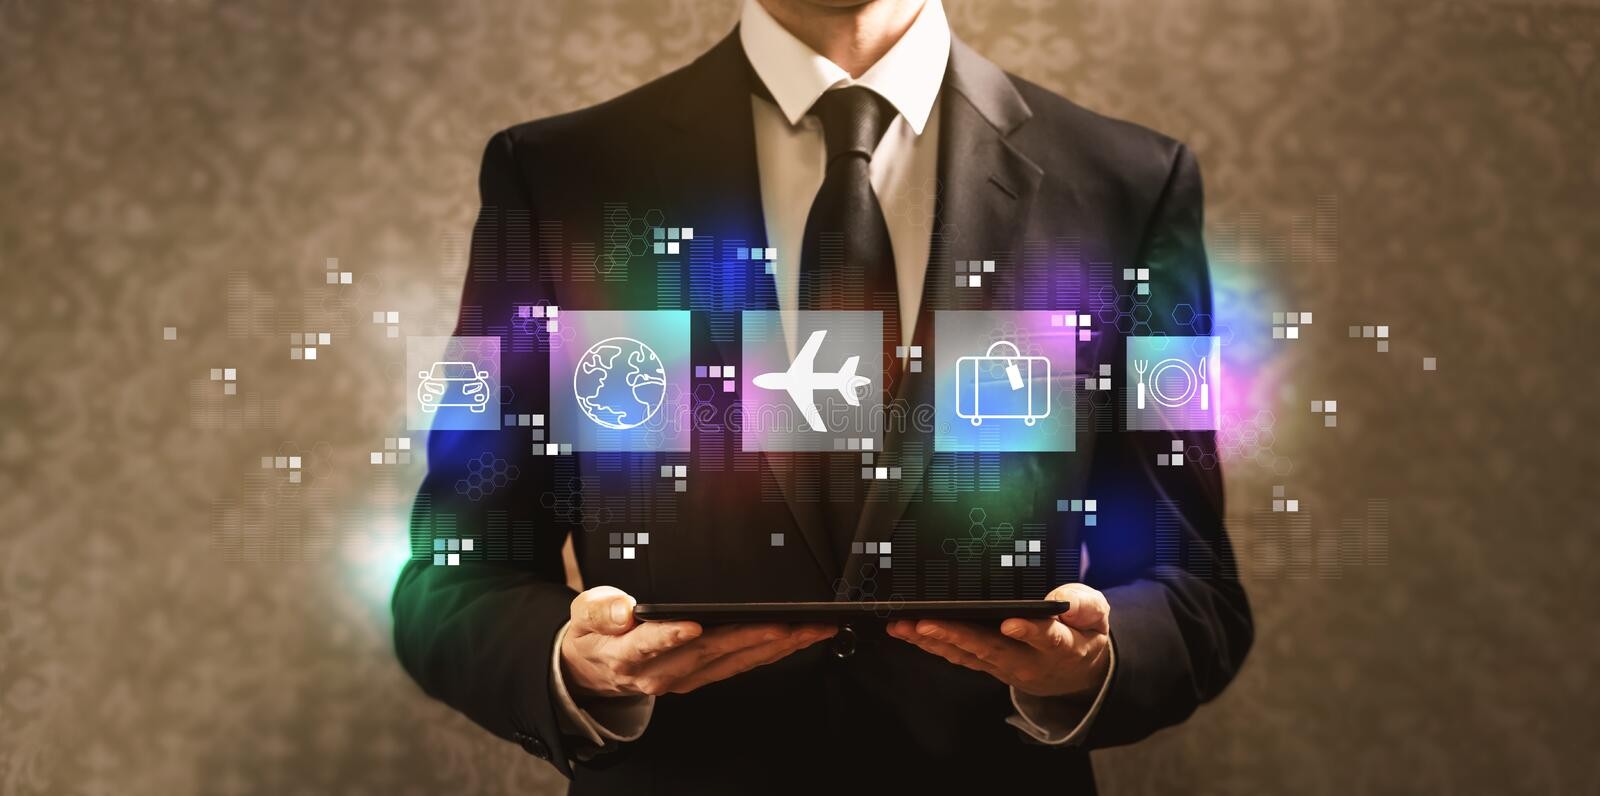 Airplane travel theme with businessman holding a tablet computer royalty free stock photography